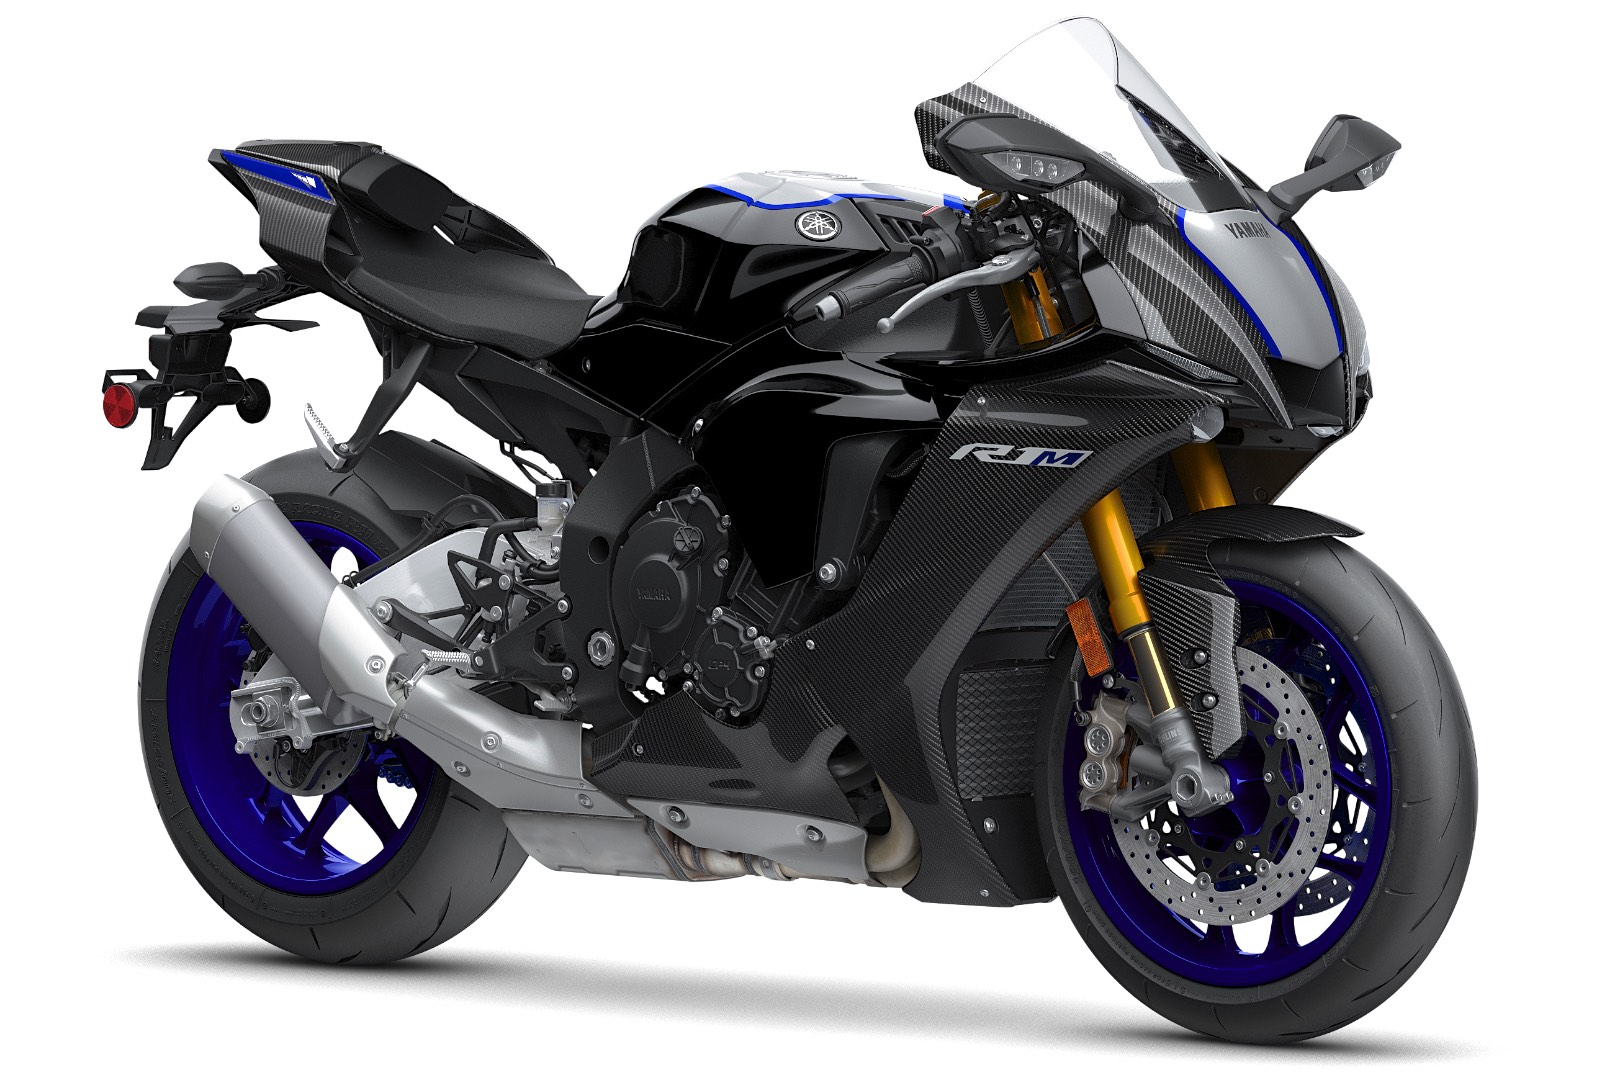 The power of the yamaha r1 carbon fiber